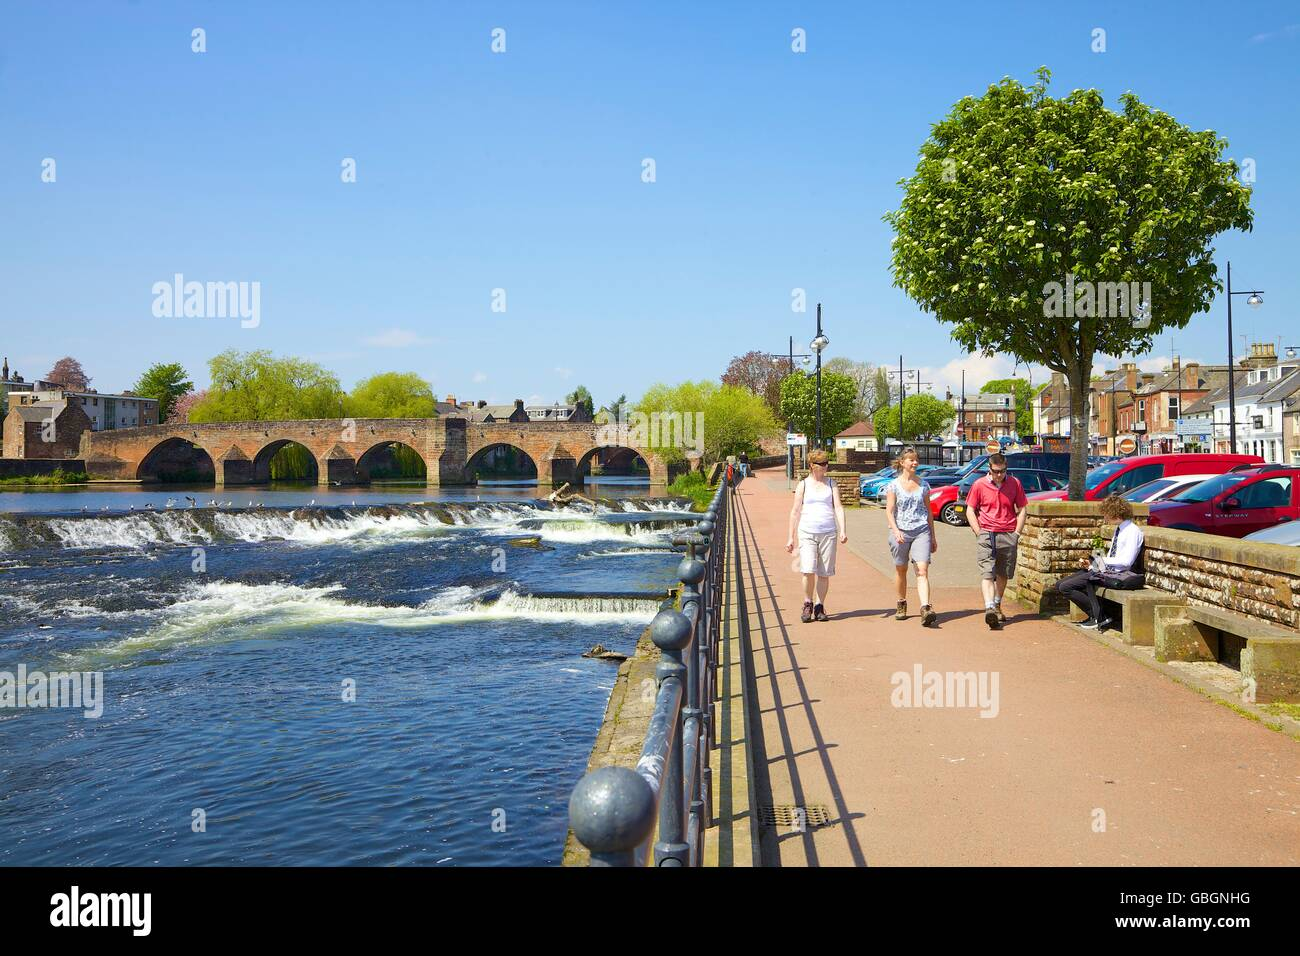 Tourists walking along river embankment. River Nith, White Sands, Dumfries, Dumfries & Galloway, Scotland, United - Stock Image